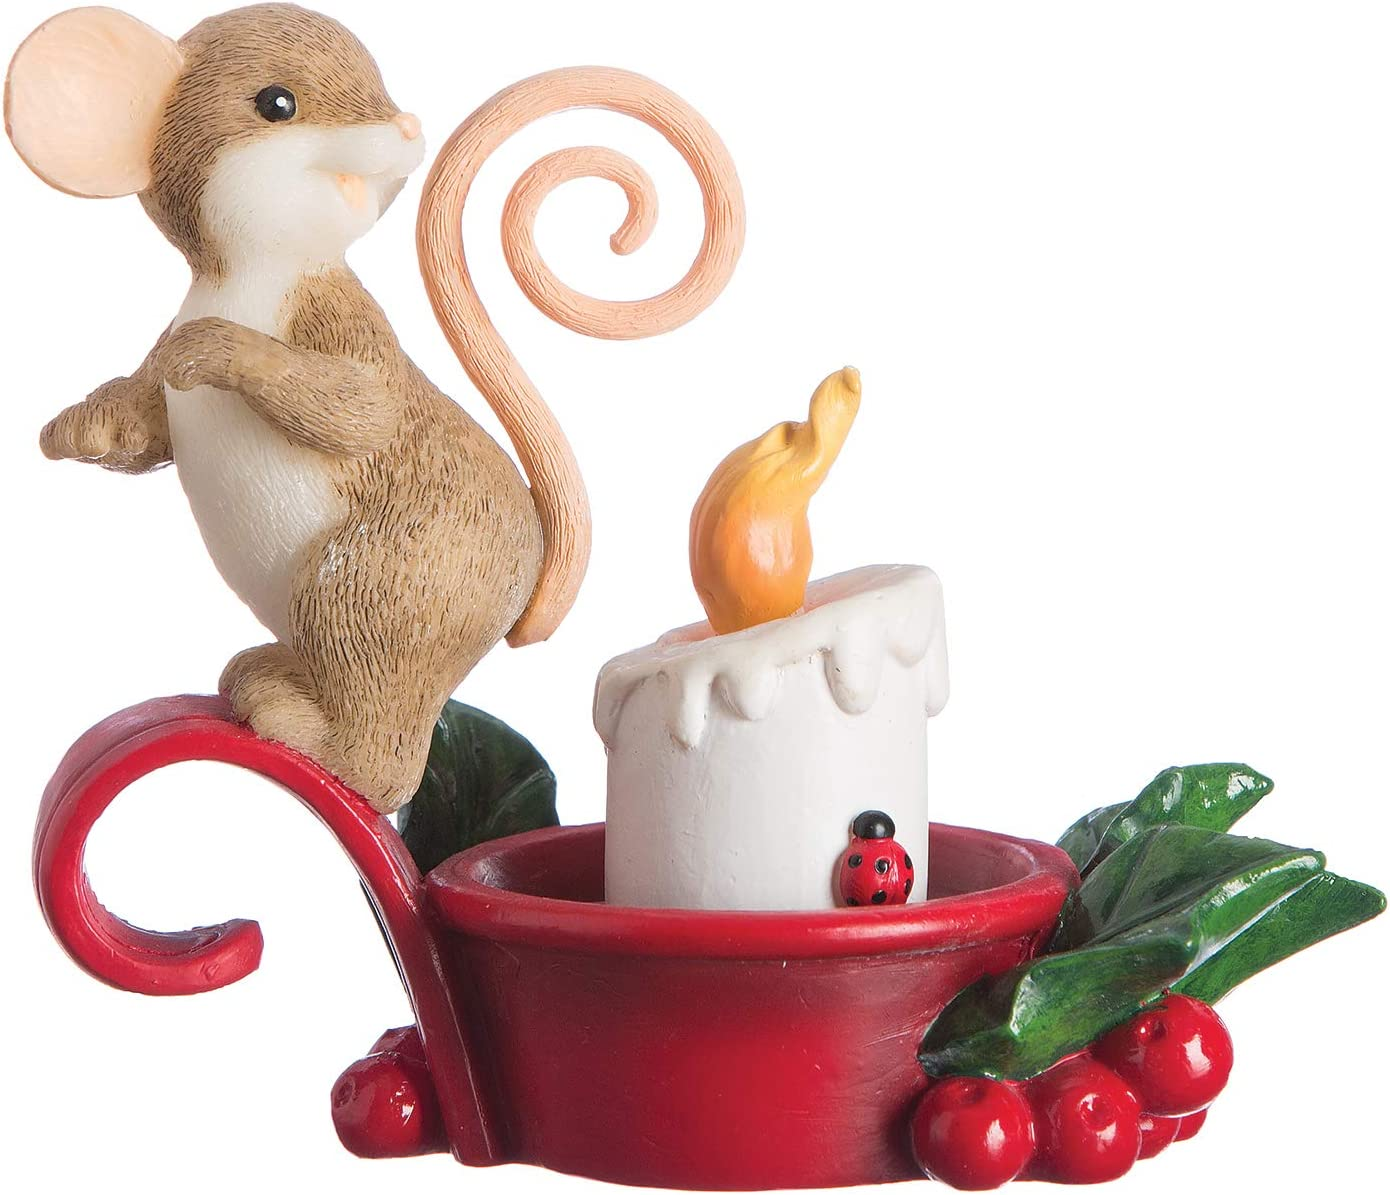 Roman - Charming Tails Collection, Lighted Mouse Figure, 4.5